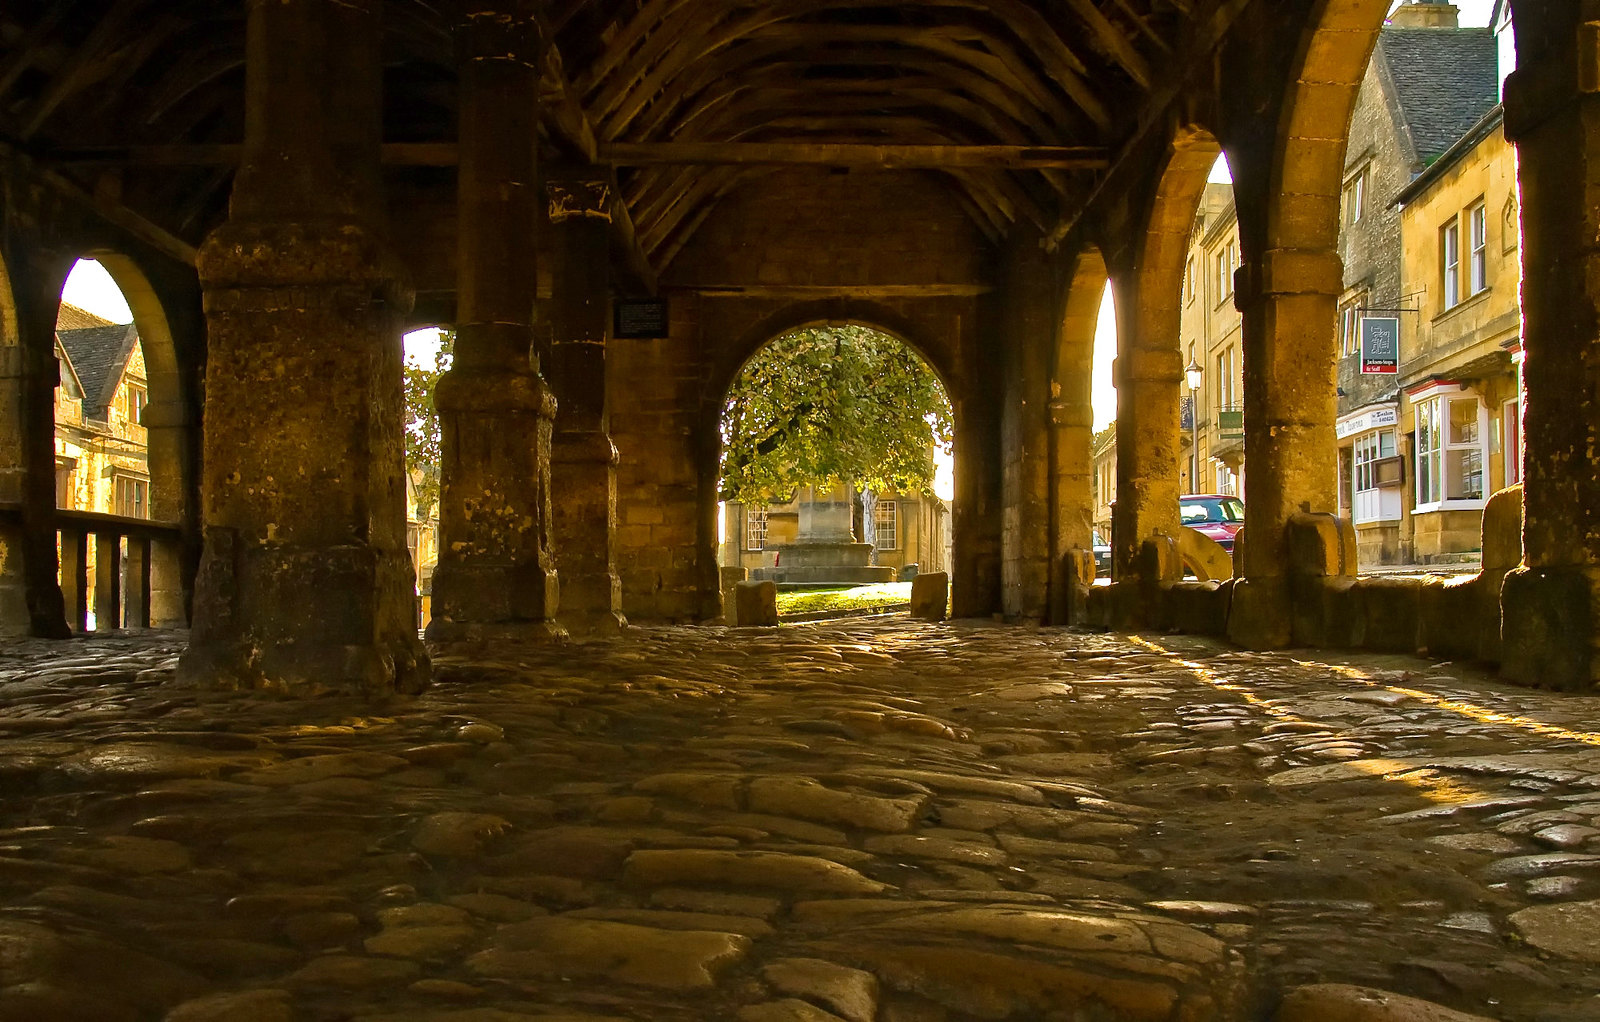 The cobbled floor of the 17th century Market Hall in Chipping Campden, Gloucestershire. Credit Anguskirk